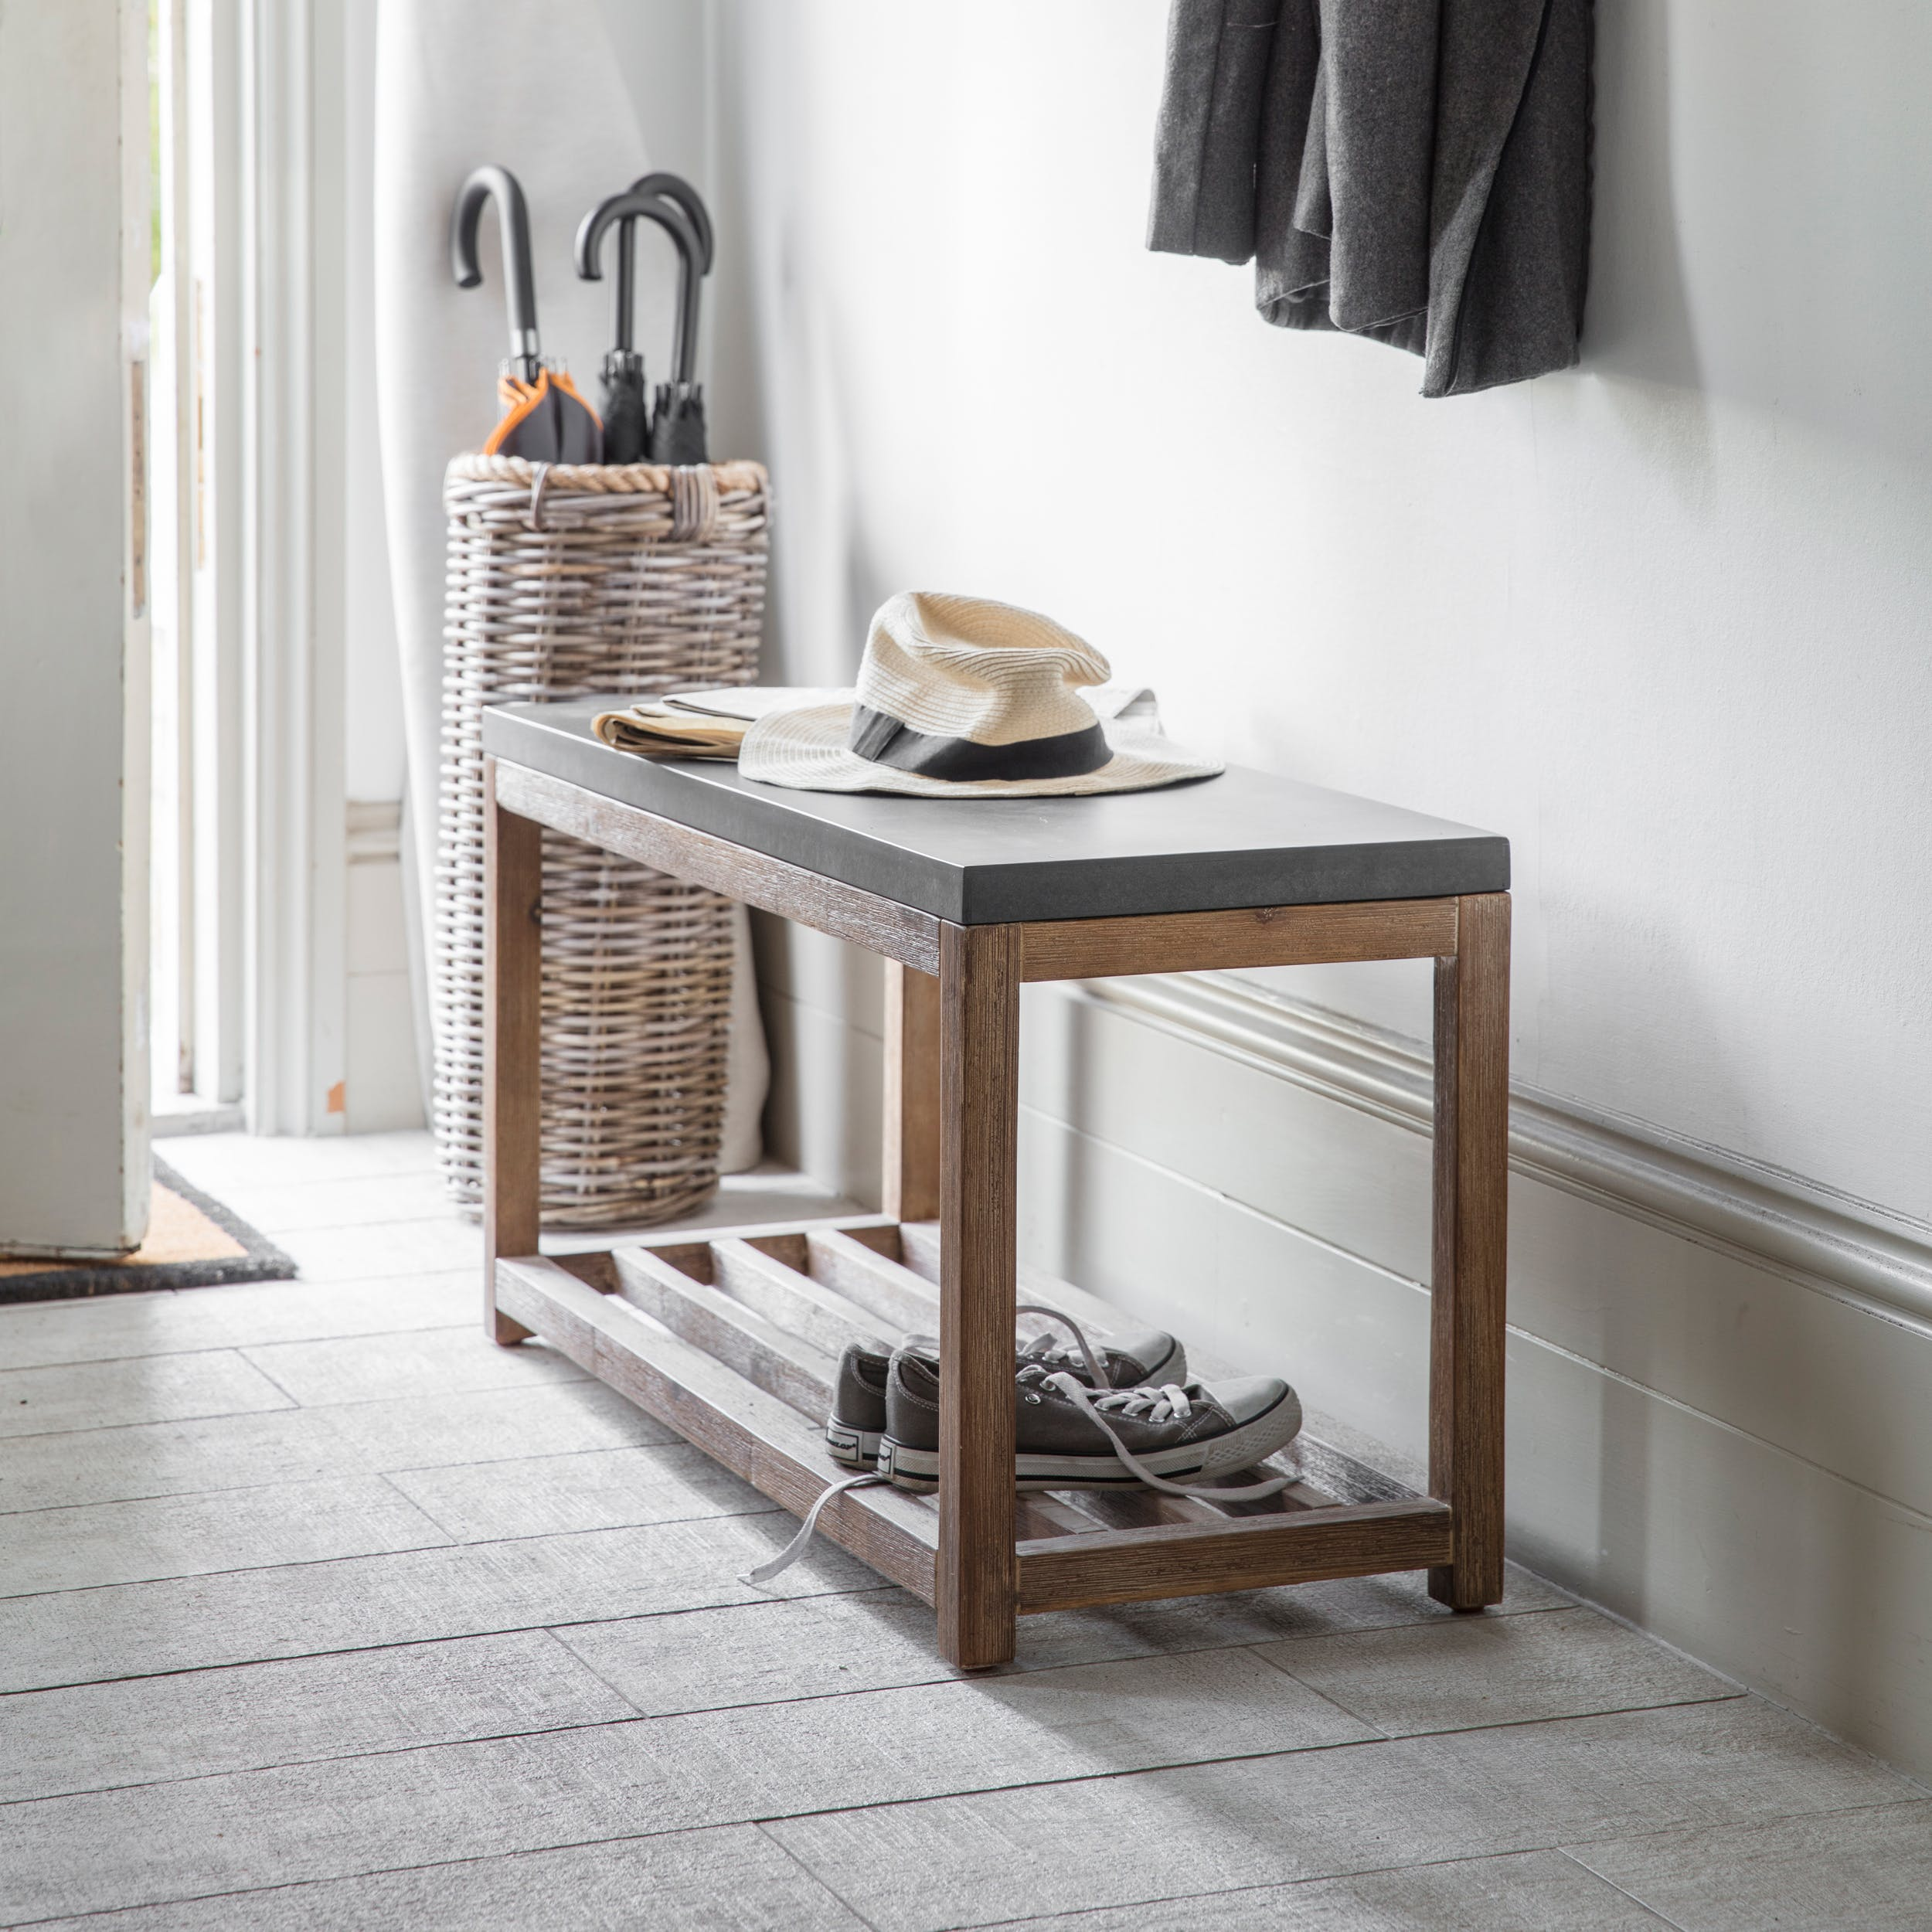 Cement and Wood Chilson Hallway Bench | Garden Trading